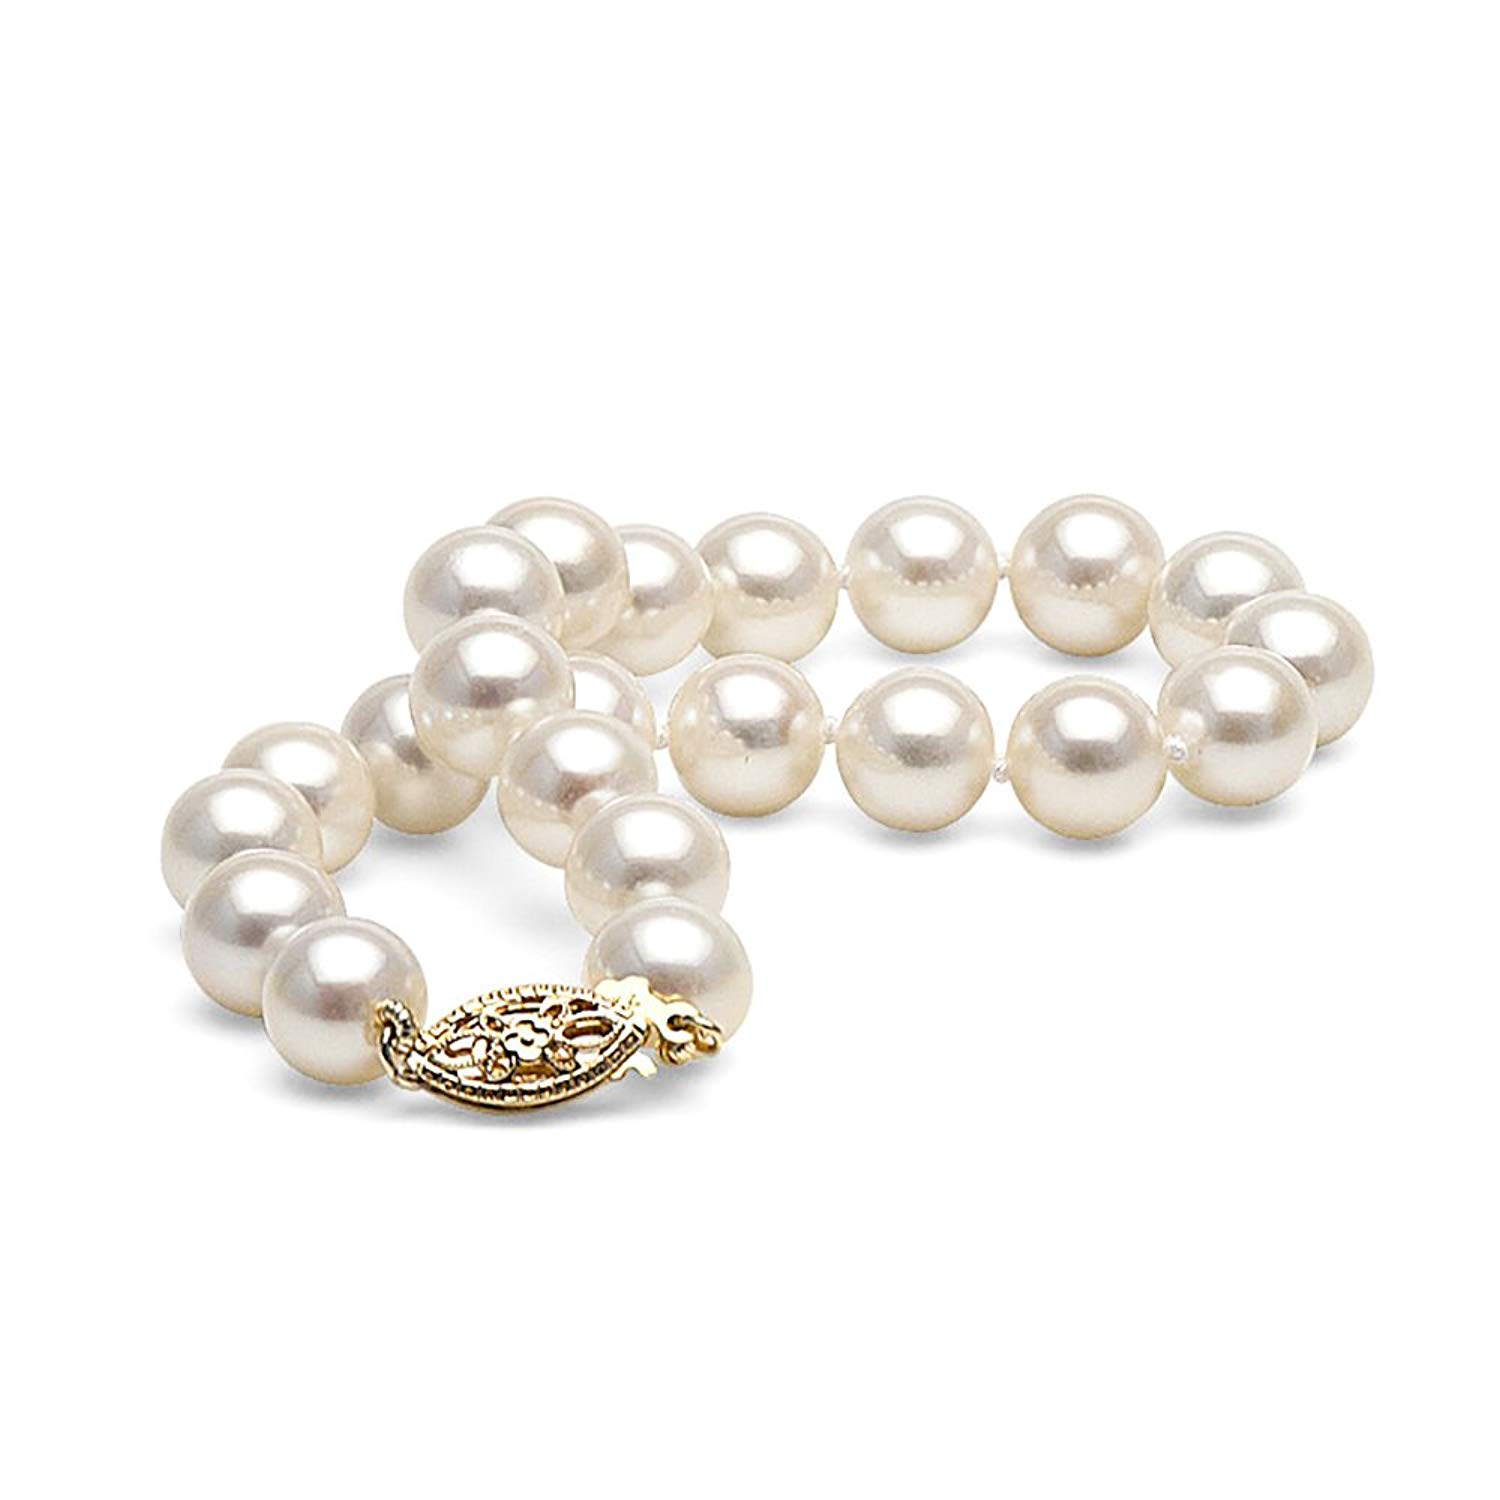 14K Cultured White Freshwater Pearl Bracelet, AA+ Quality, 7.5-Inches (yellow-gold, 7.0-8.0mm)